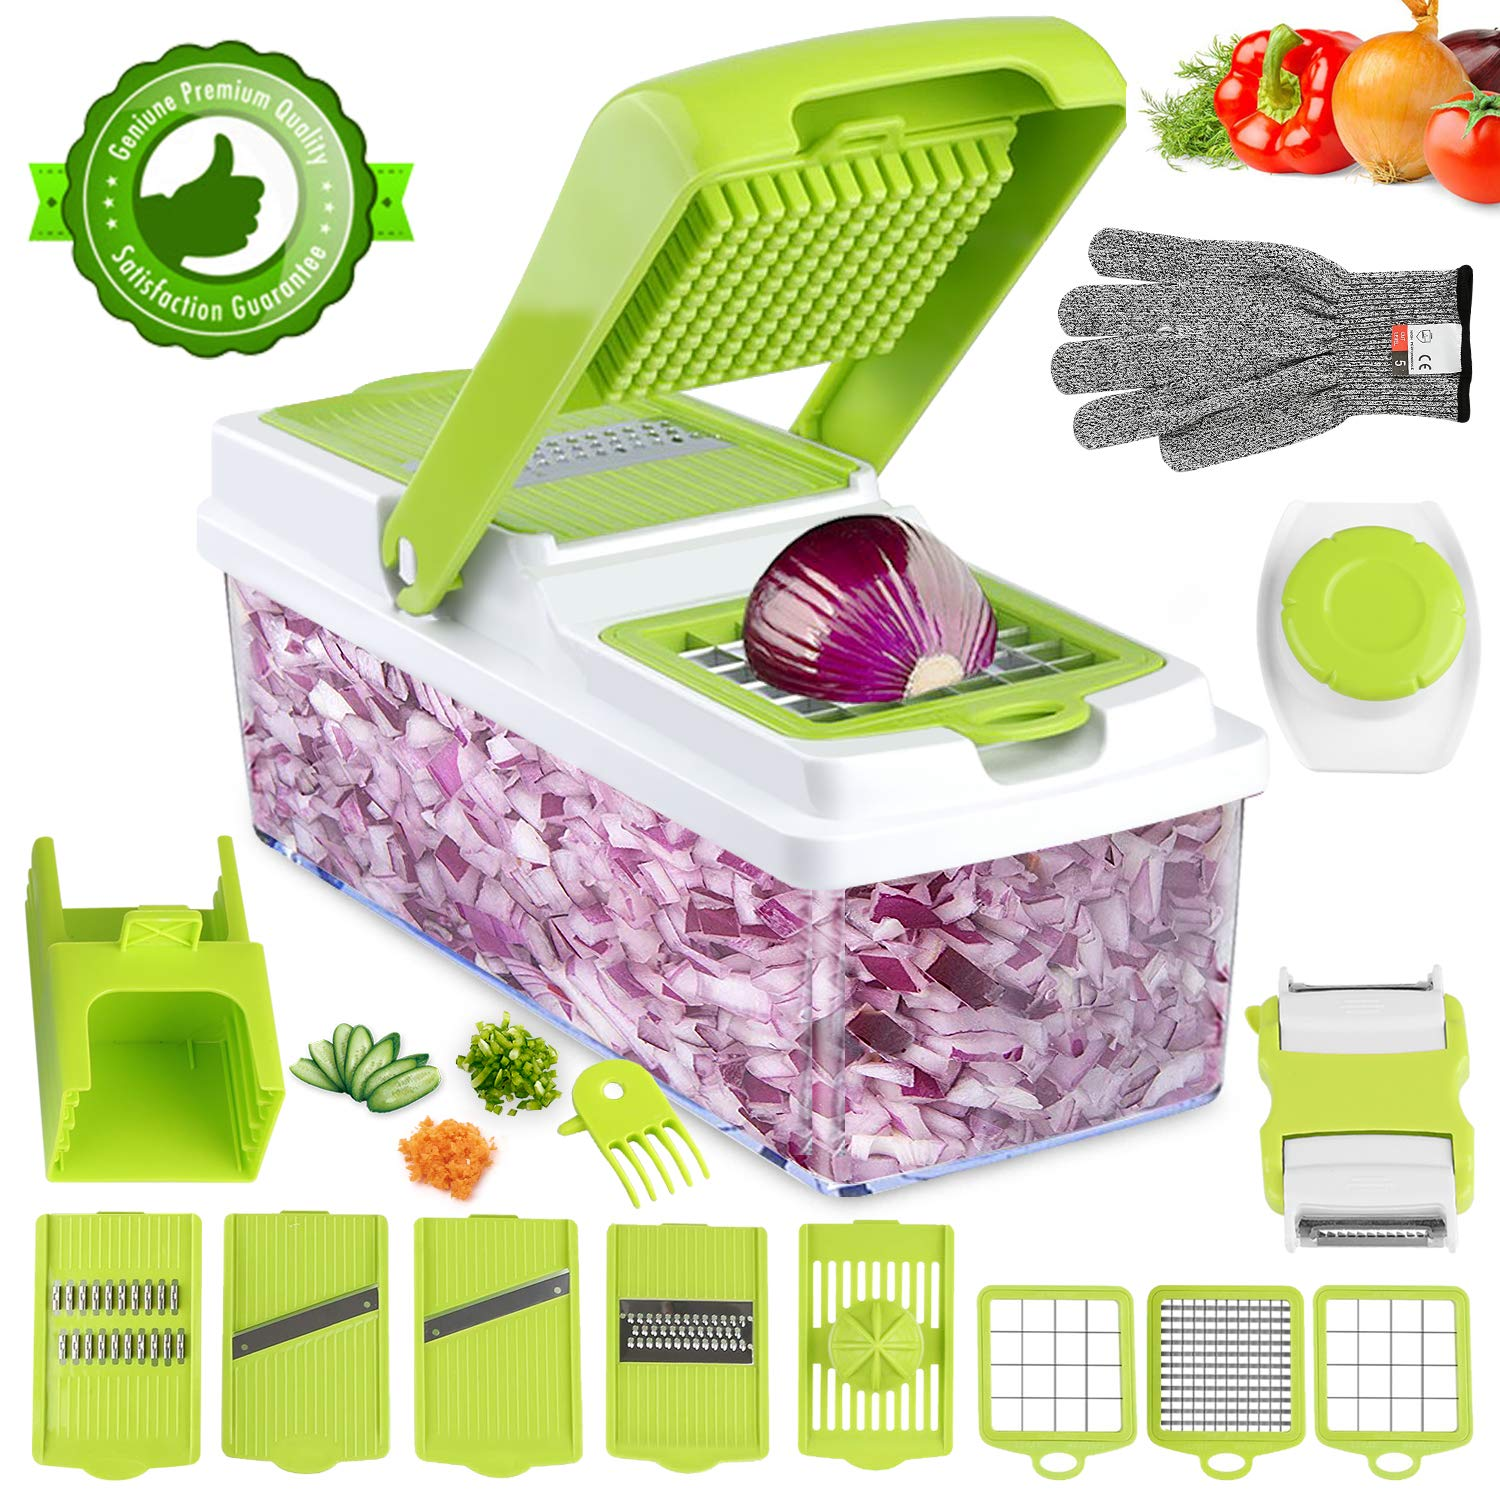 Vegetable Chopper, ONSON Food Chopper Cutter Onion Slicer Dicer, 10 in 1 Veggie Slicer Manual Mandoline for Carrot, Garlic, Cabbage, Tomato, Potato, Fruit, Salad by ONSON